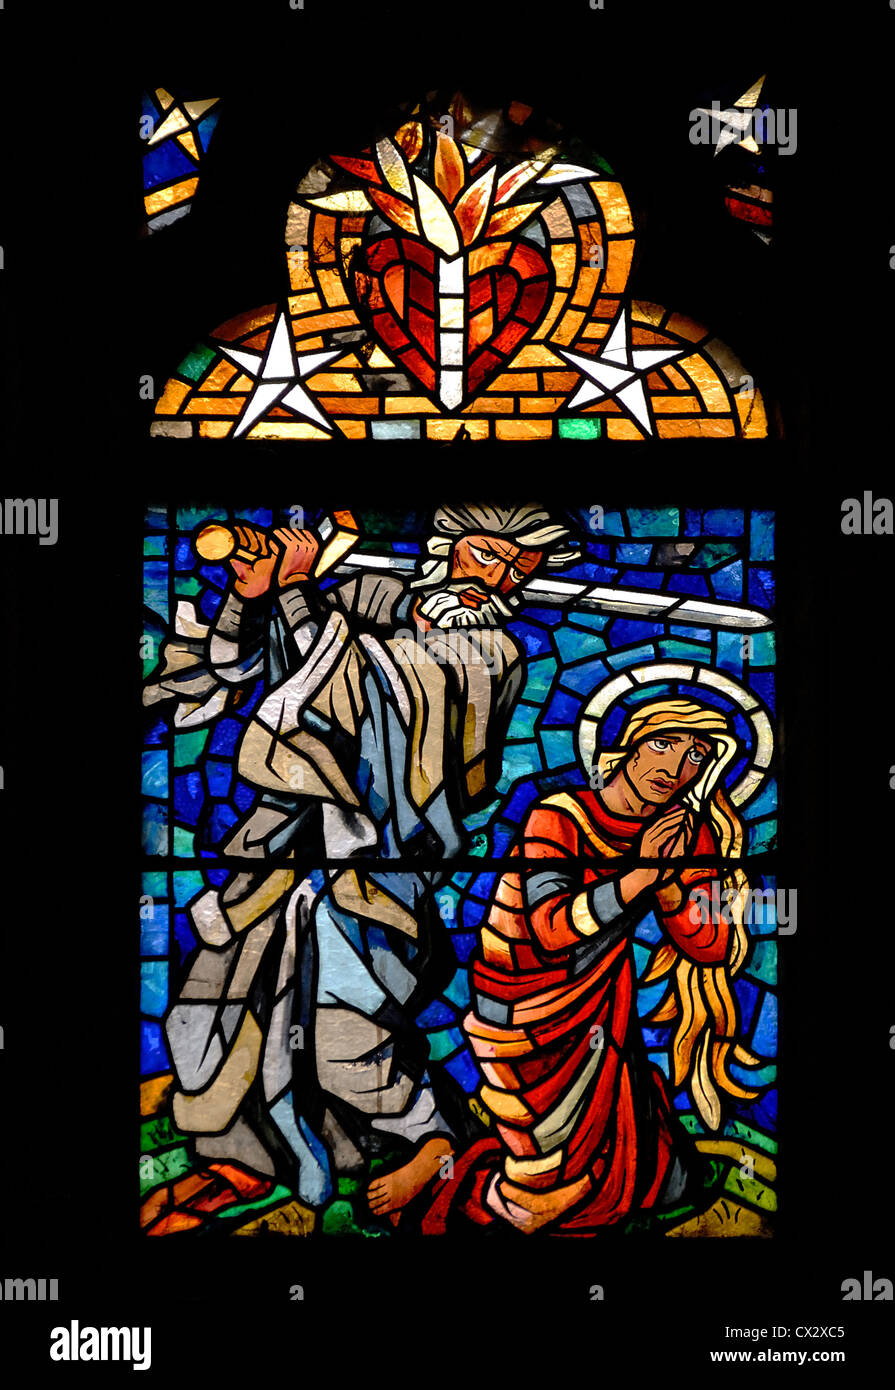 Prague, Czech Republic. St Vitus' Cathedral / Katedrala svateho vita. Stained glass window - Abraham ready to - Stock Image